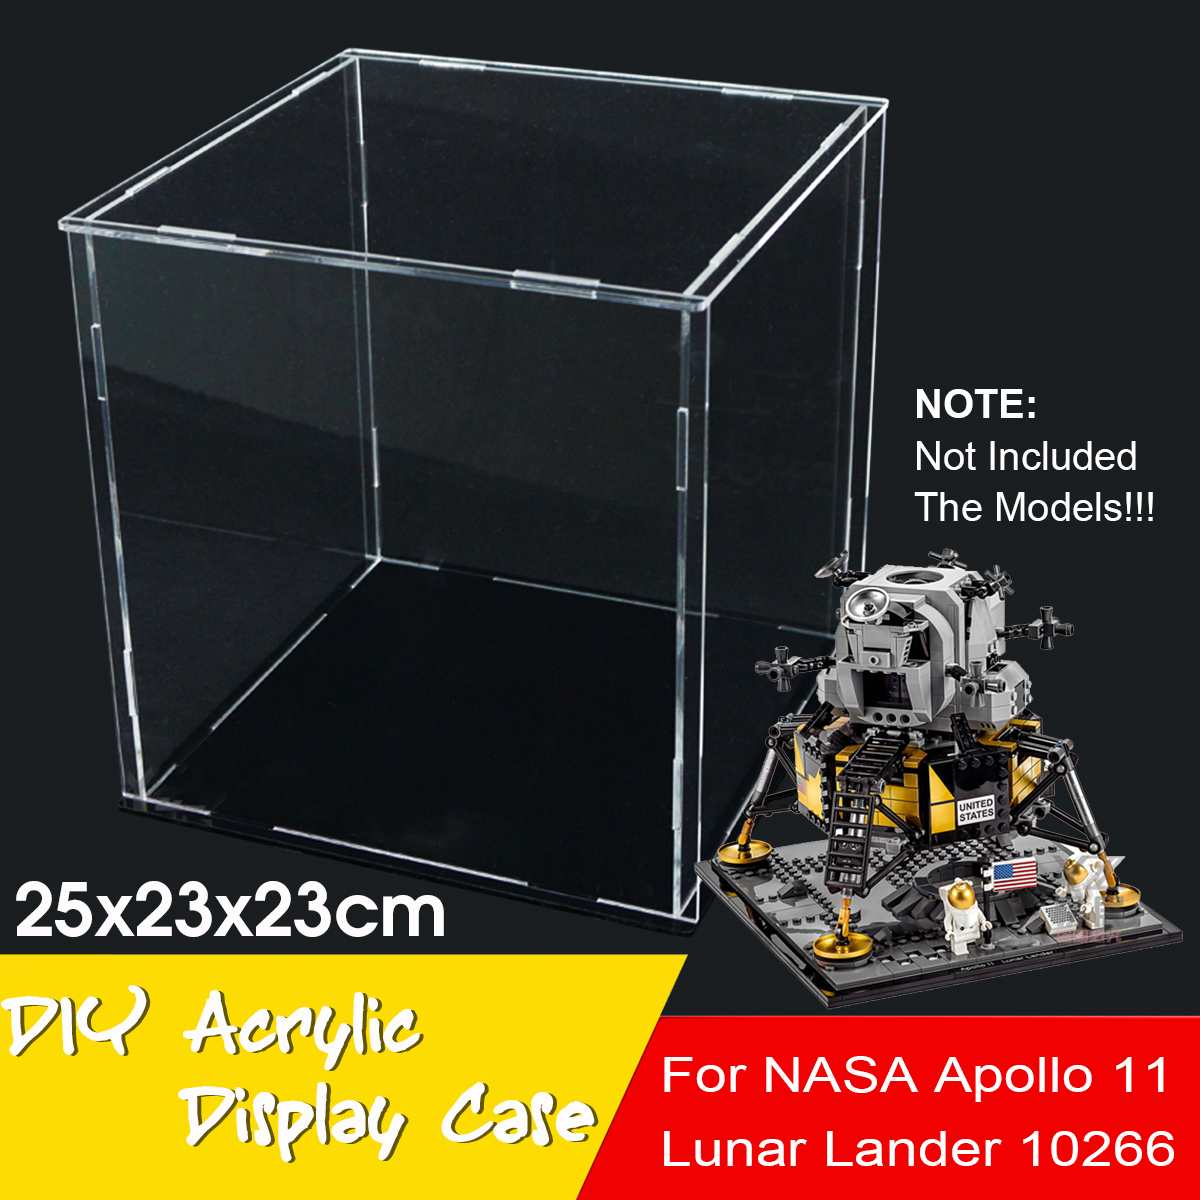 NEW 25x23x23cm Transparent Clear Acrylic Display Case Show Box For Lego for NASA for Apollo Lunar Lander Bricks Toy Model image